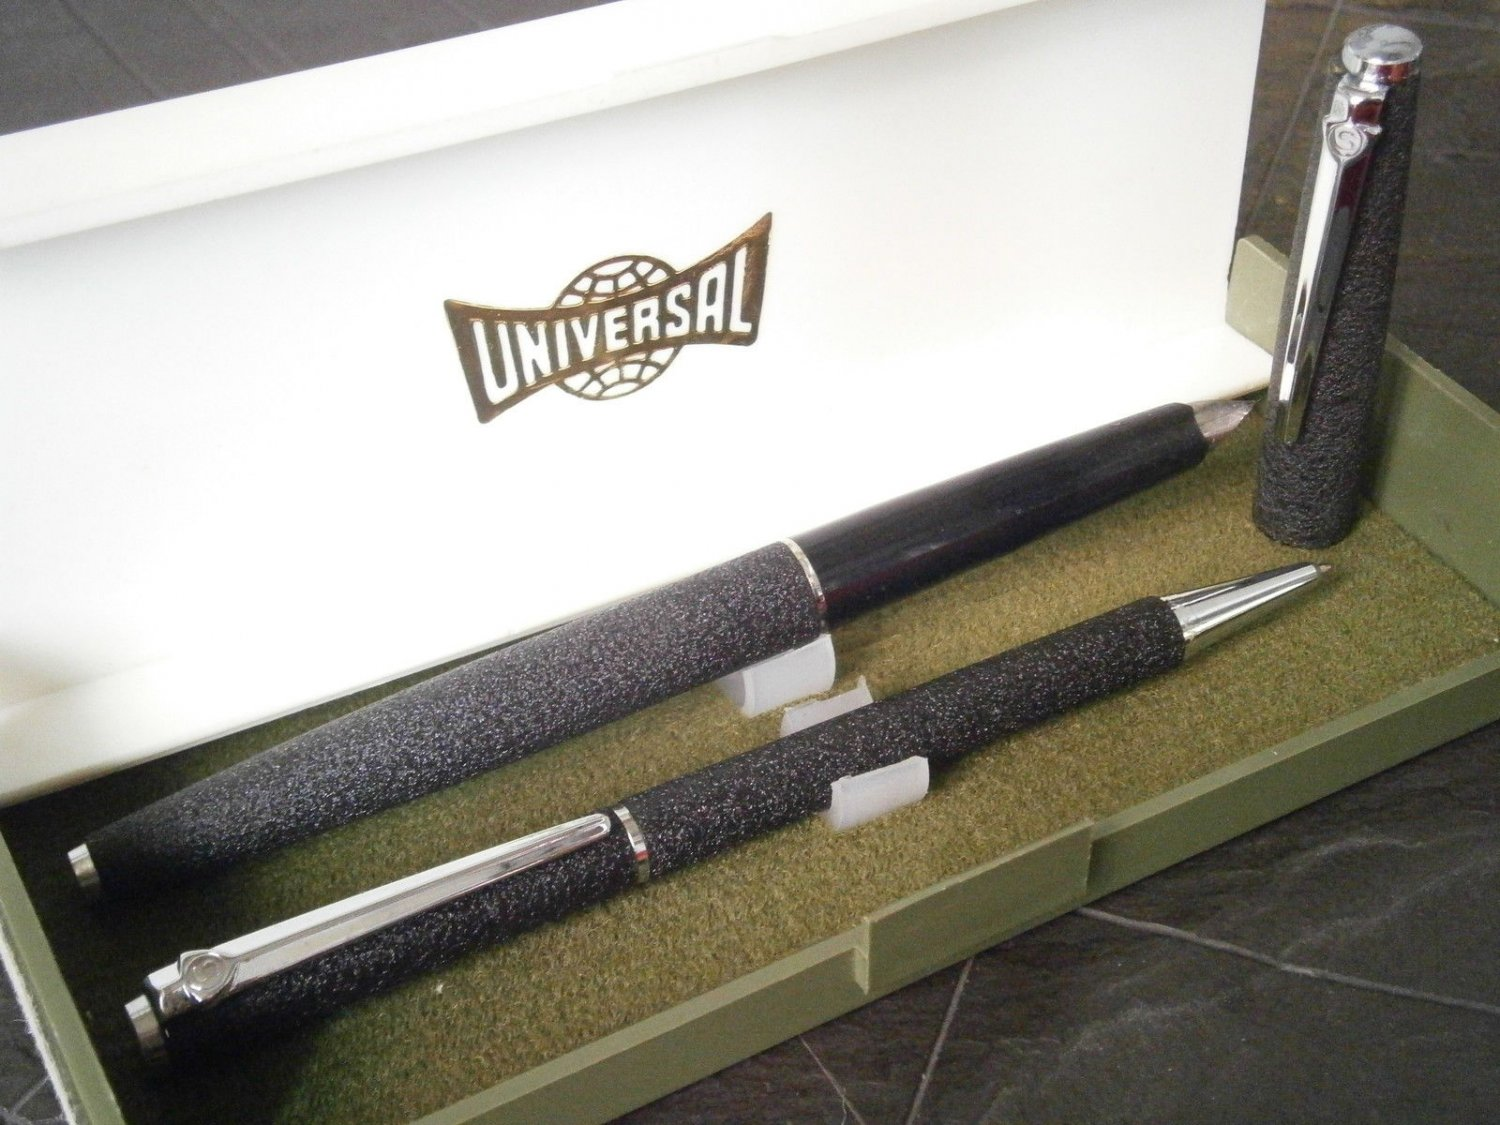 UNIVERSAL SET fountain pen and ball point pen in black color Original in gift box